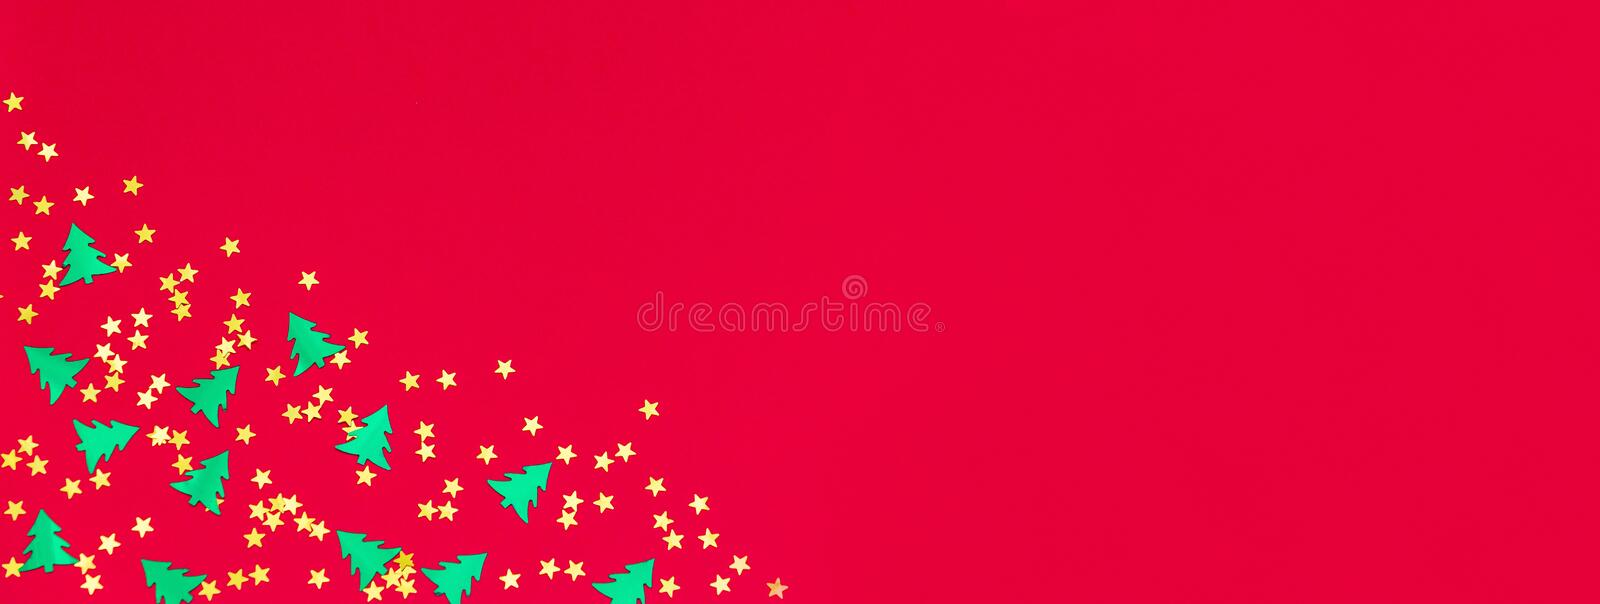 Christmas and Happy new year banner. Green metallic foil christmas trees and gold stars confetti on red background. Simple holiday design template. Frame with royalty free stock image